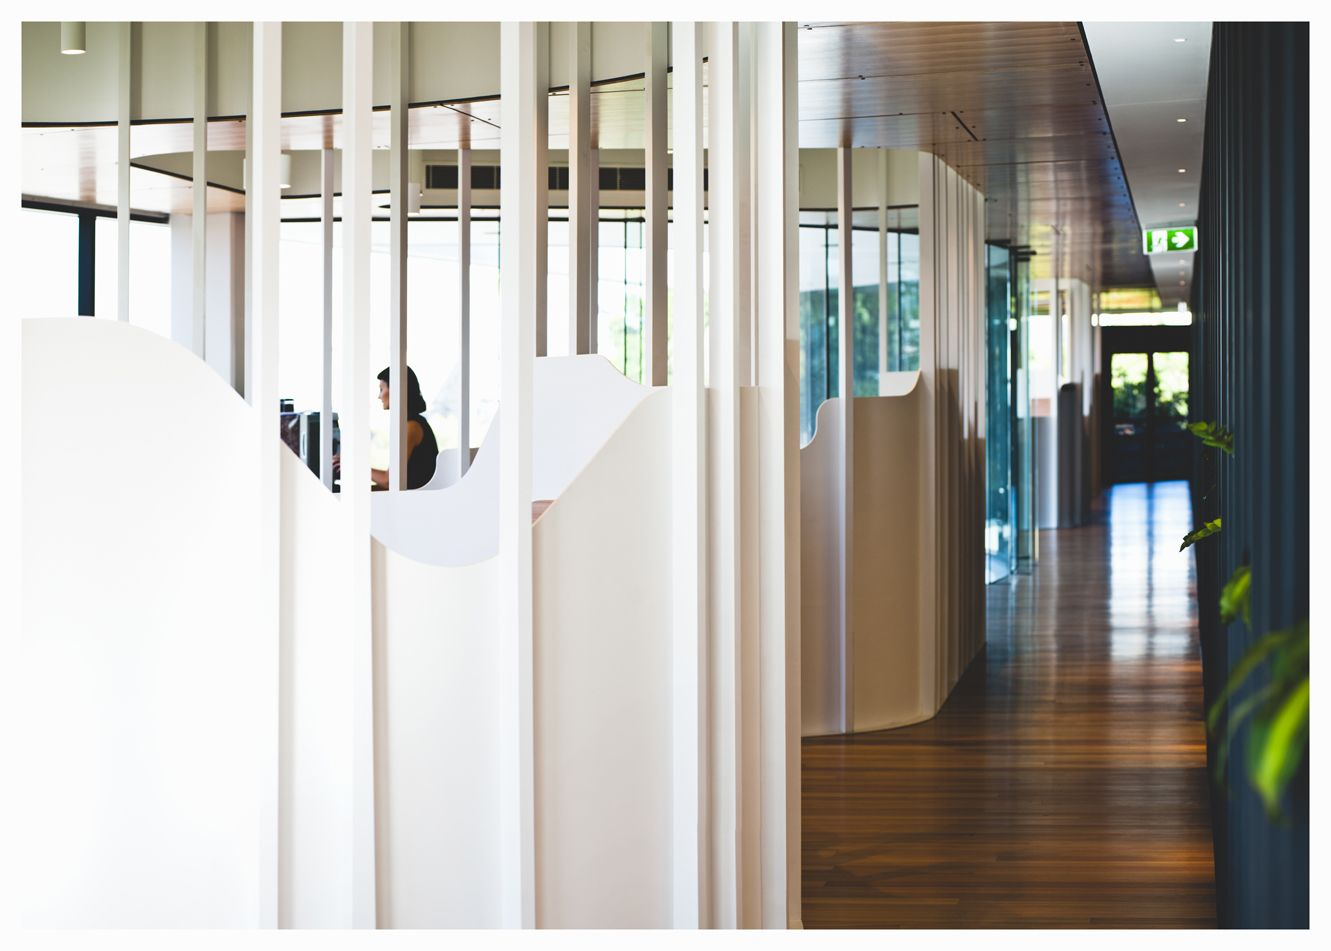 Murphy Pipe and Civil office fit-out. Jarosz Design in collaboration with Marc&Co and Baber Studio. Photography: Camera Obscura #officedesign